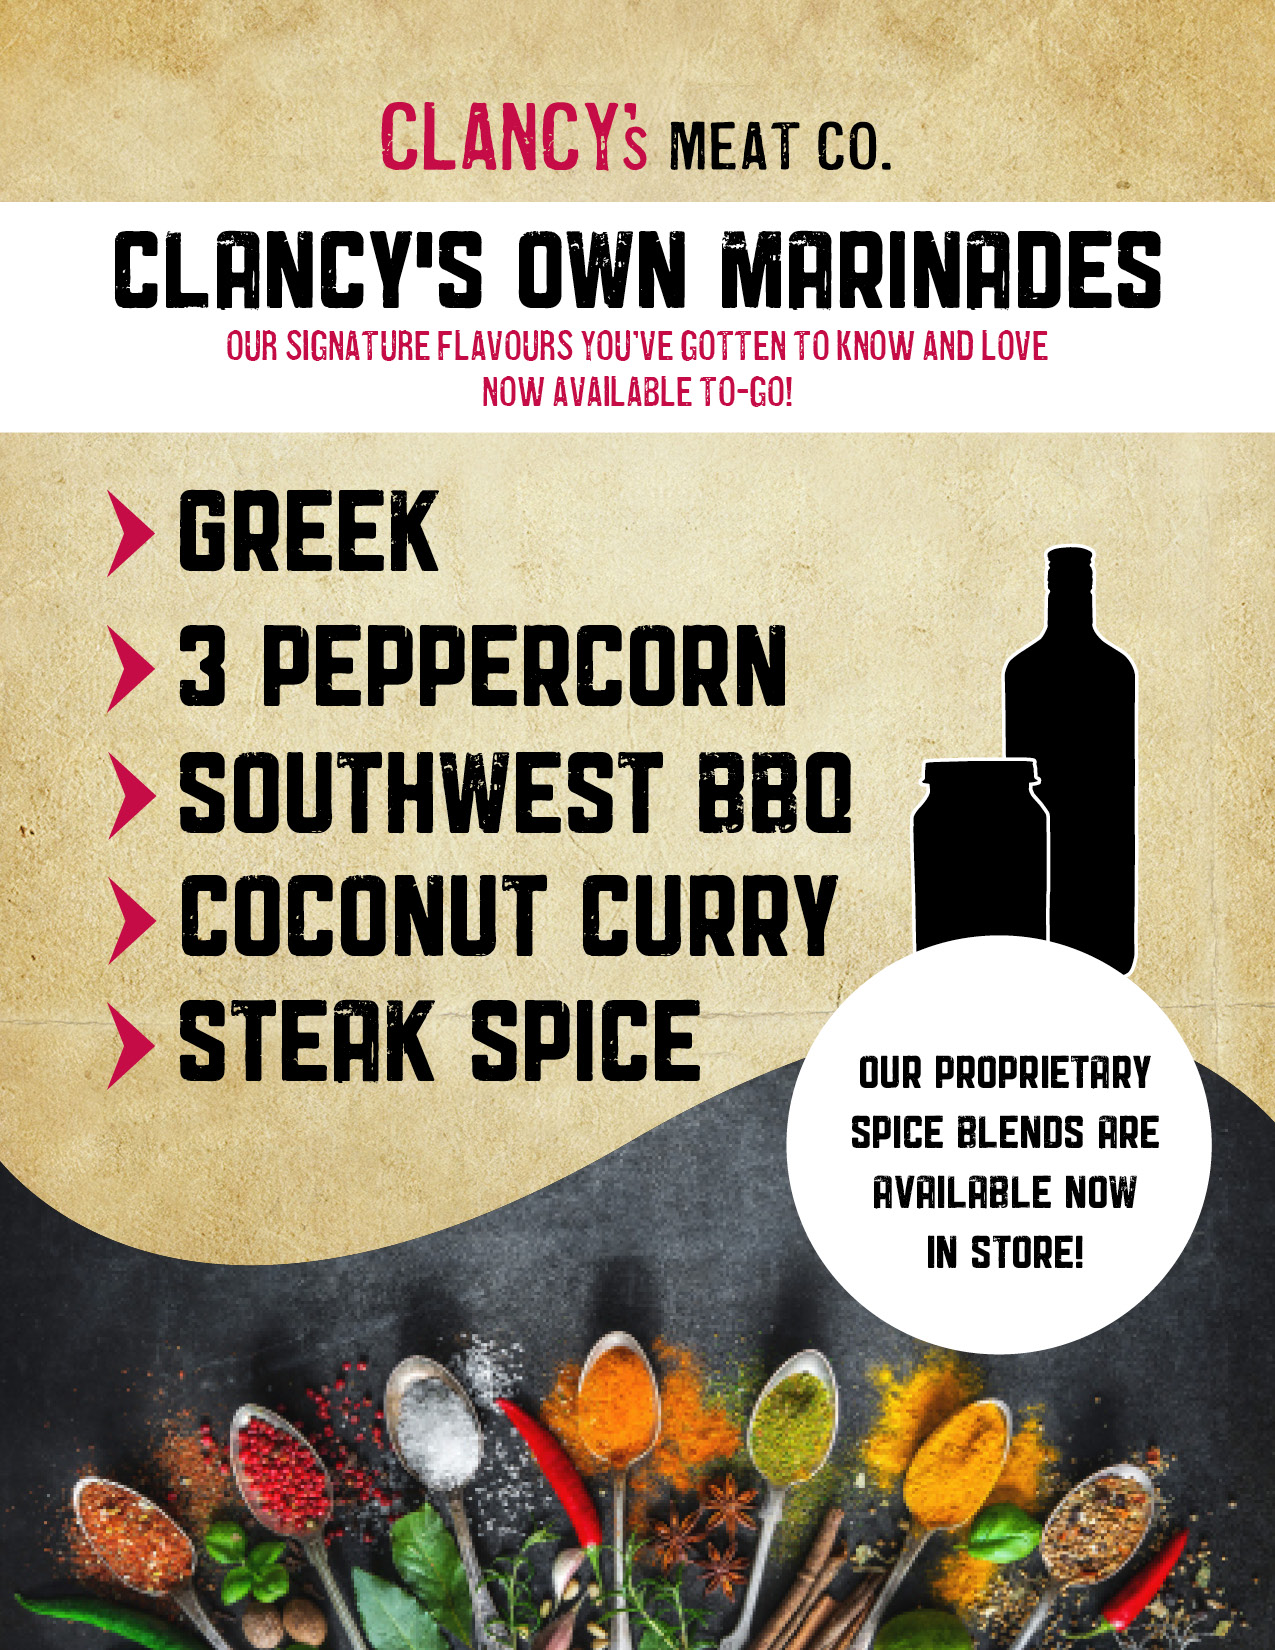 Clancys Proprietary Marinades POP Sign.jpg